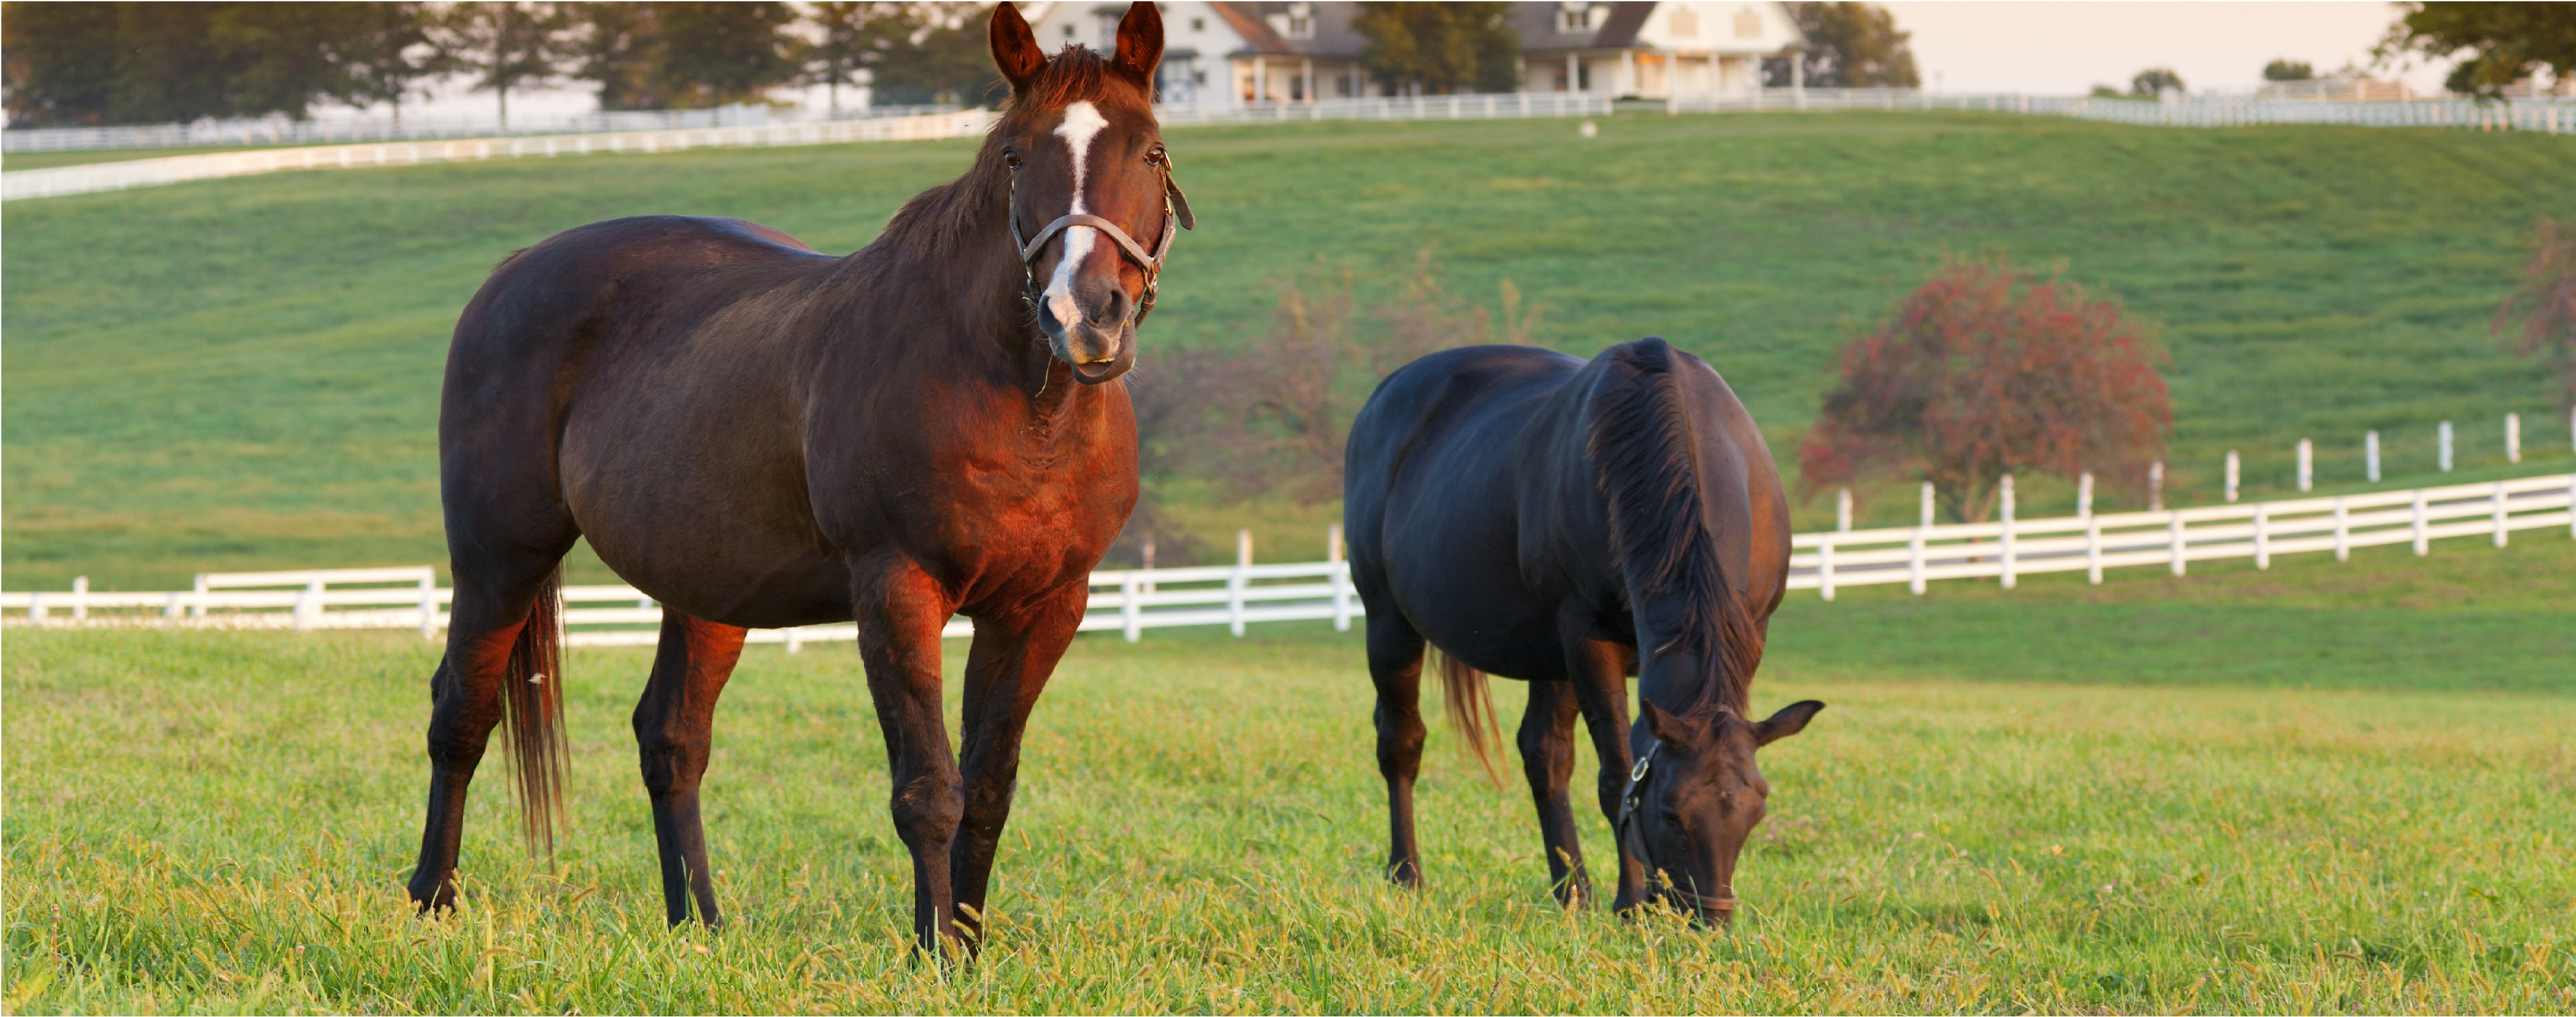 Equine Vet Services our surgery facilities in invercargill